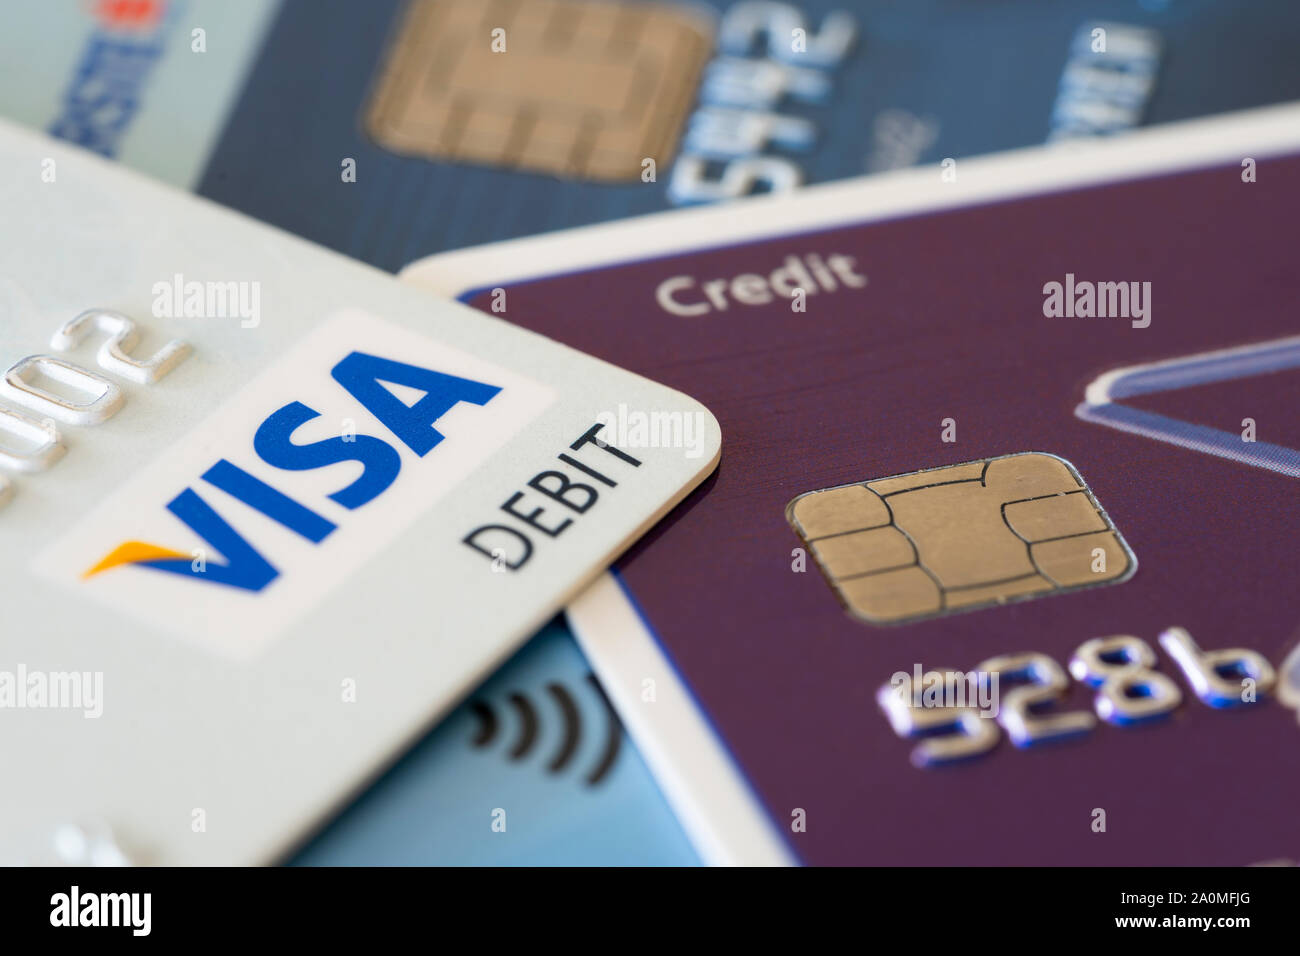 Debit Visa and Mastercard credit cards showing the concepts of finances and debt Stock Photo